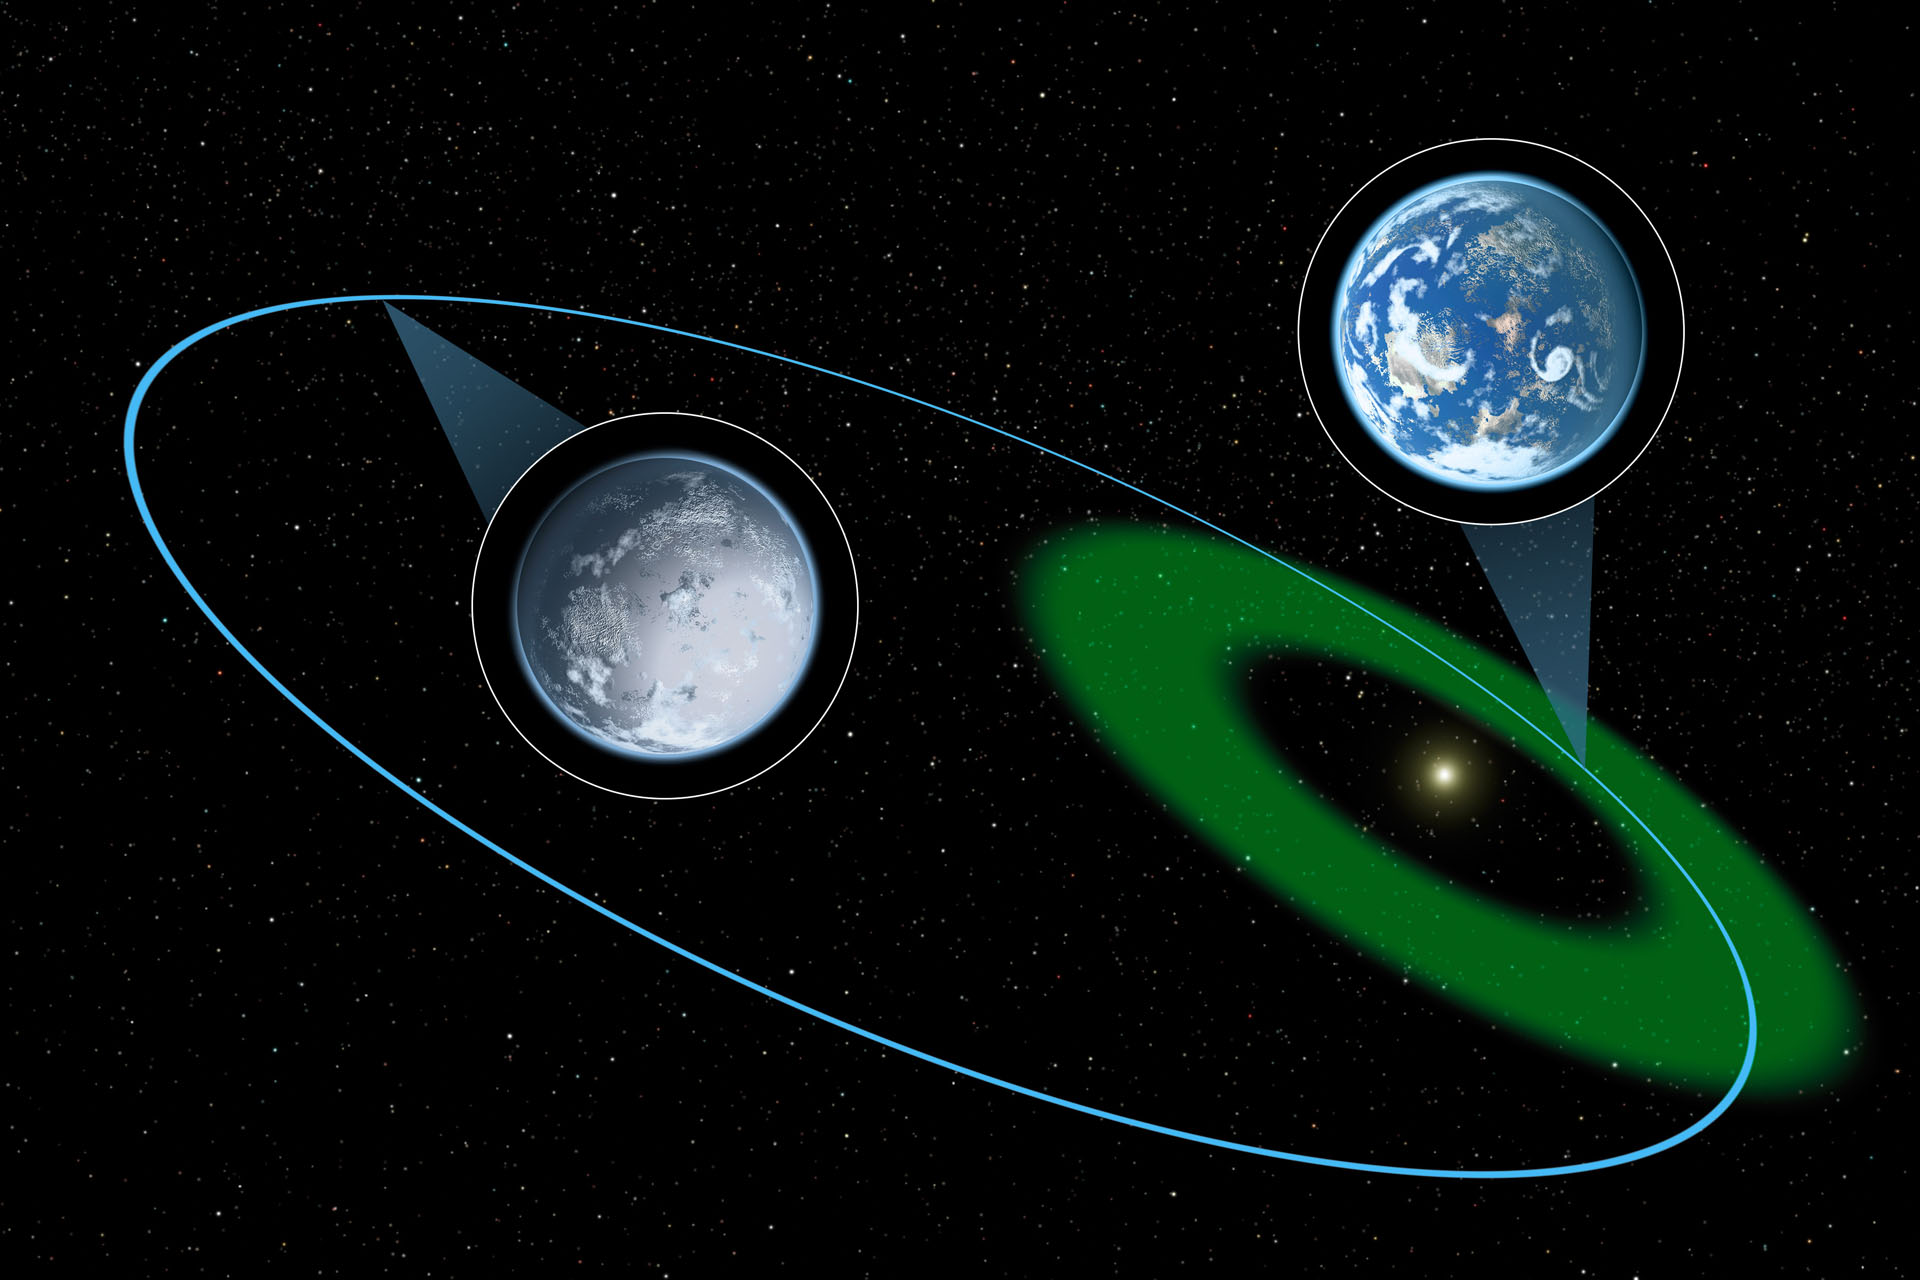 Quot Habitable Zone Quot Might Help Extreme Life Forms Survive On